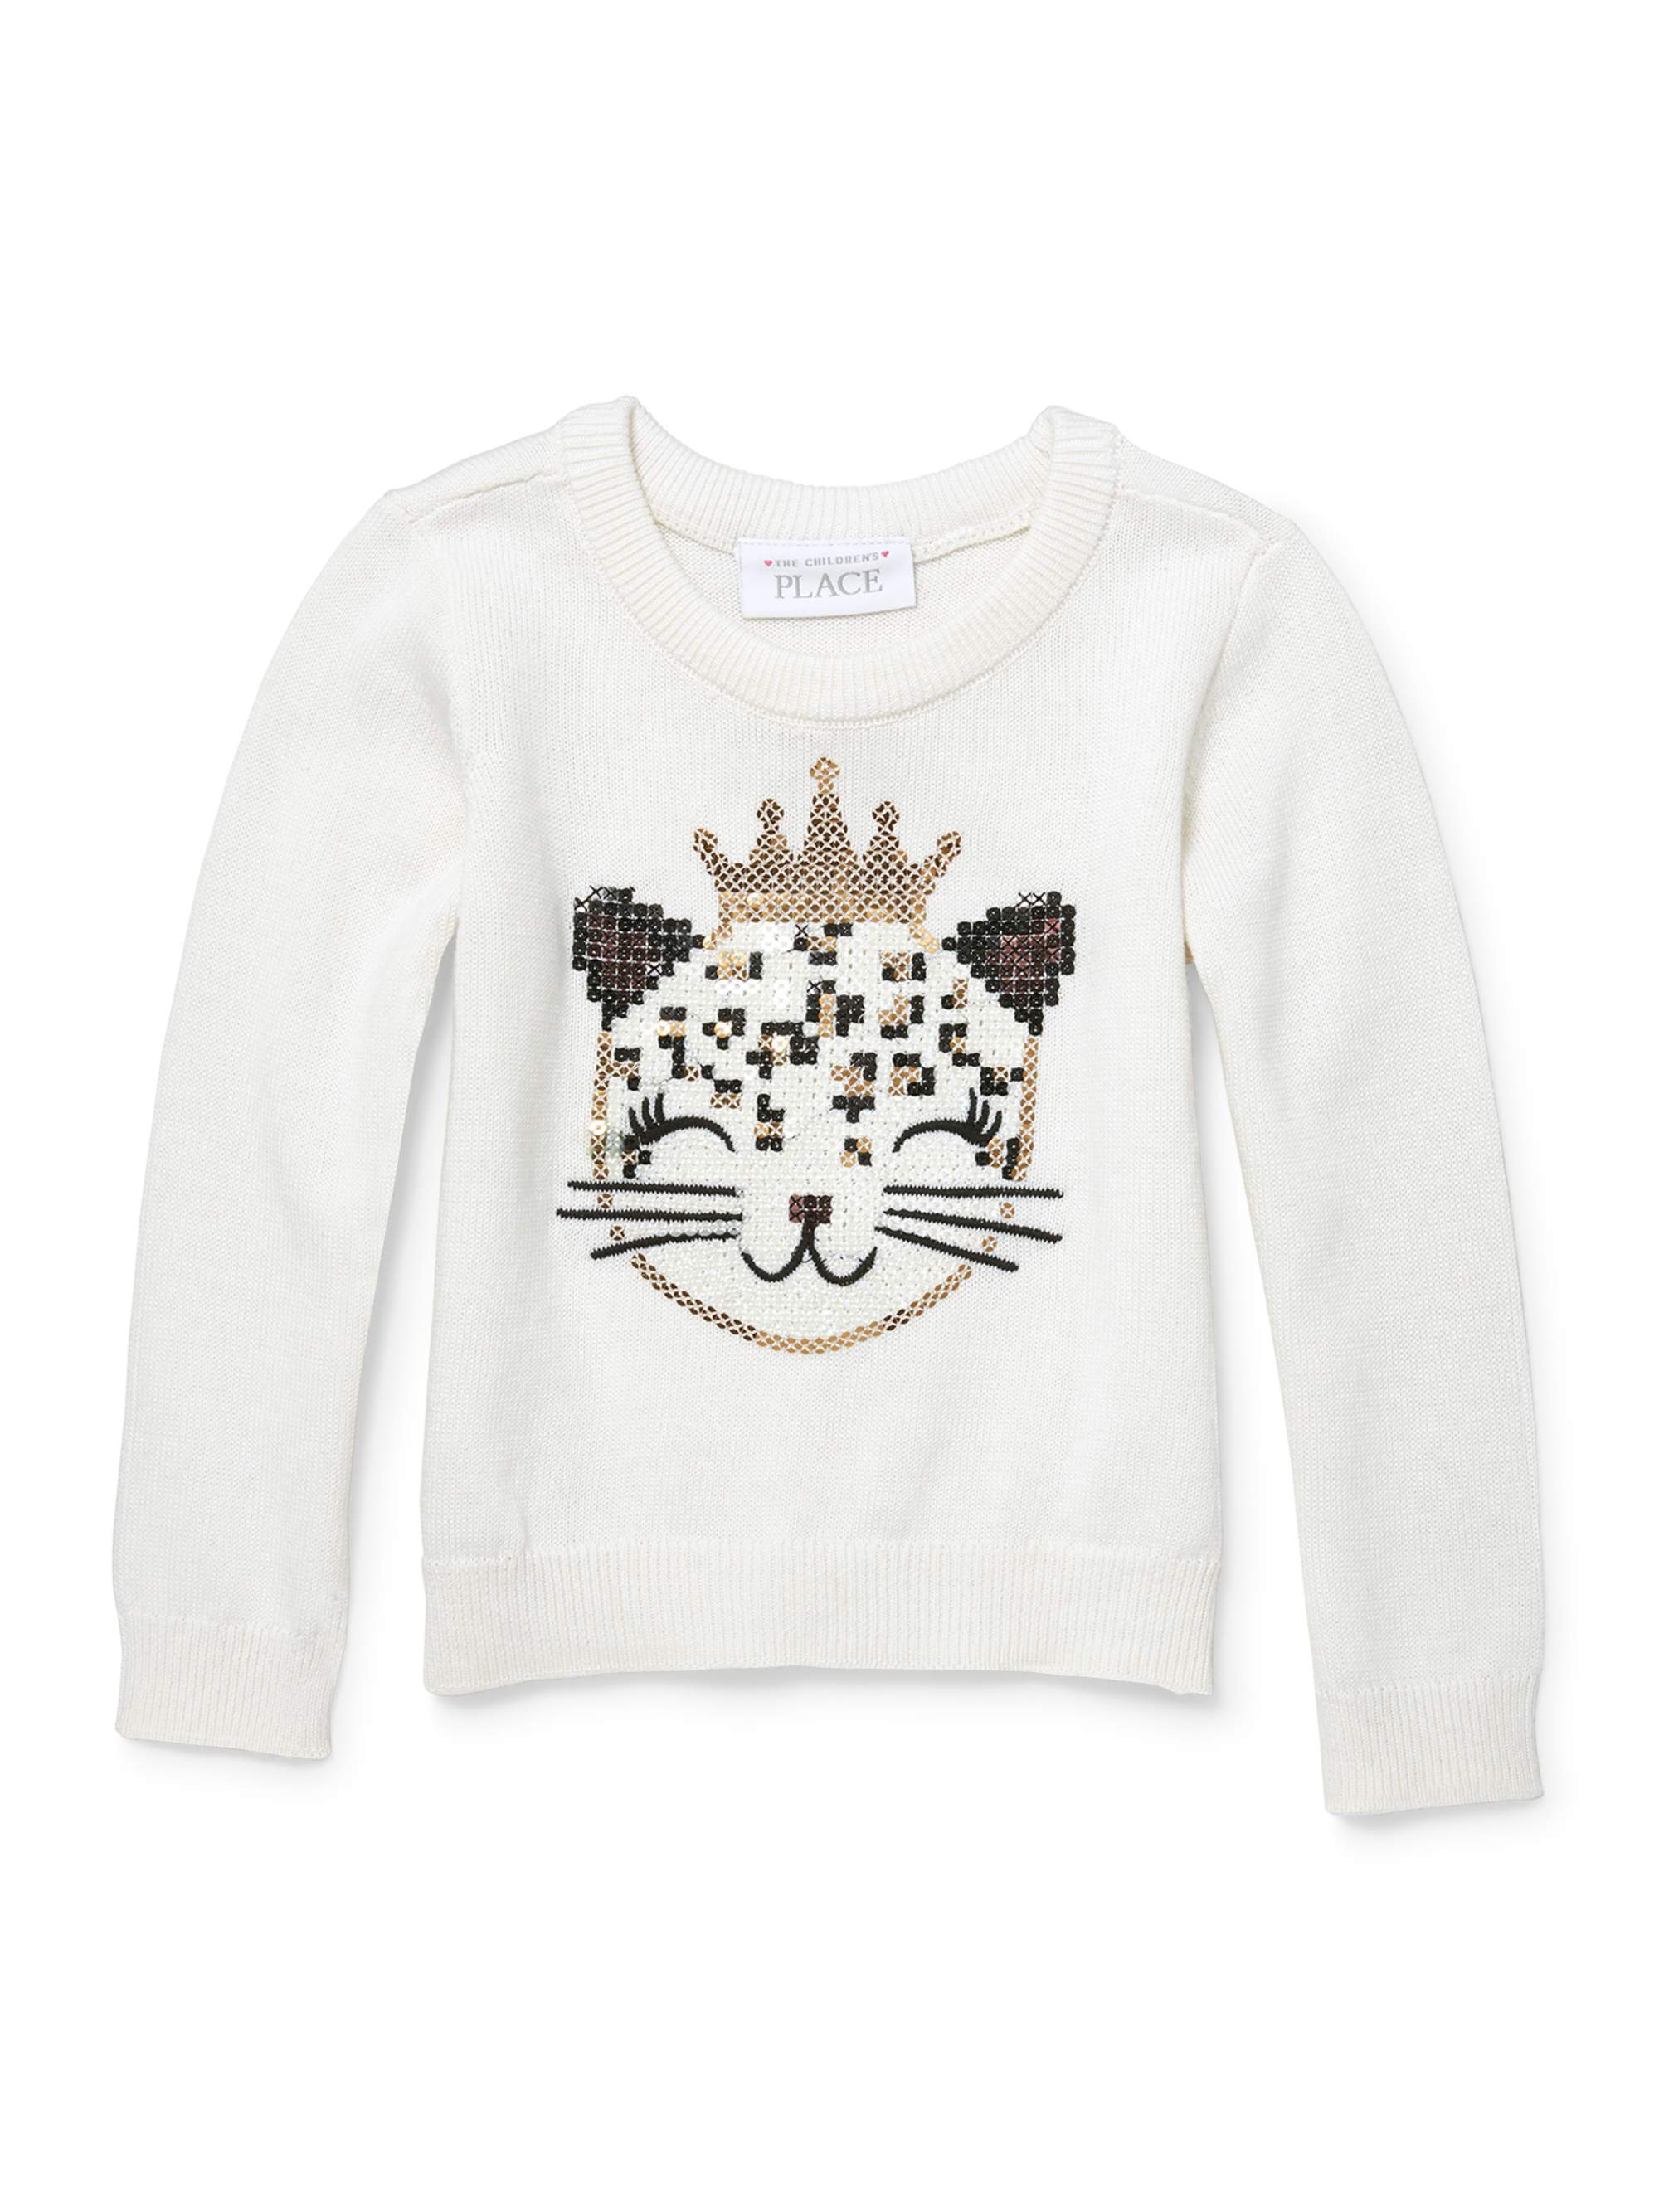 The Children's Place Long Sleeve Graphic Crew Neck Sweater (Toddler Girls)